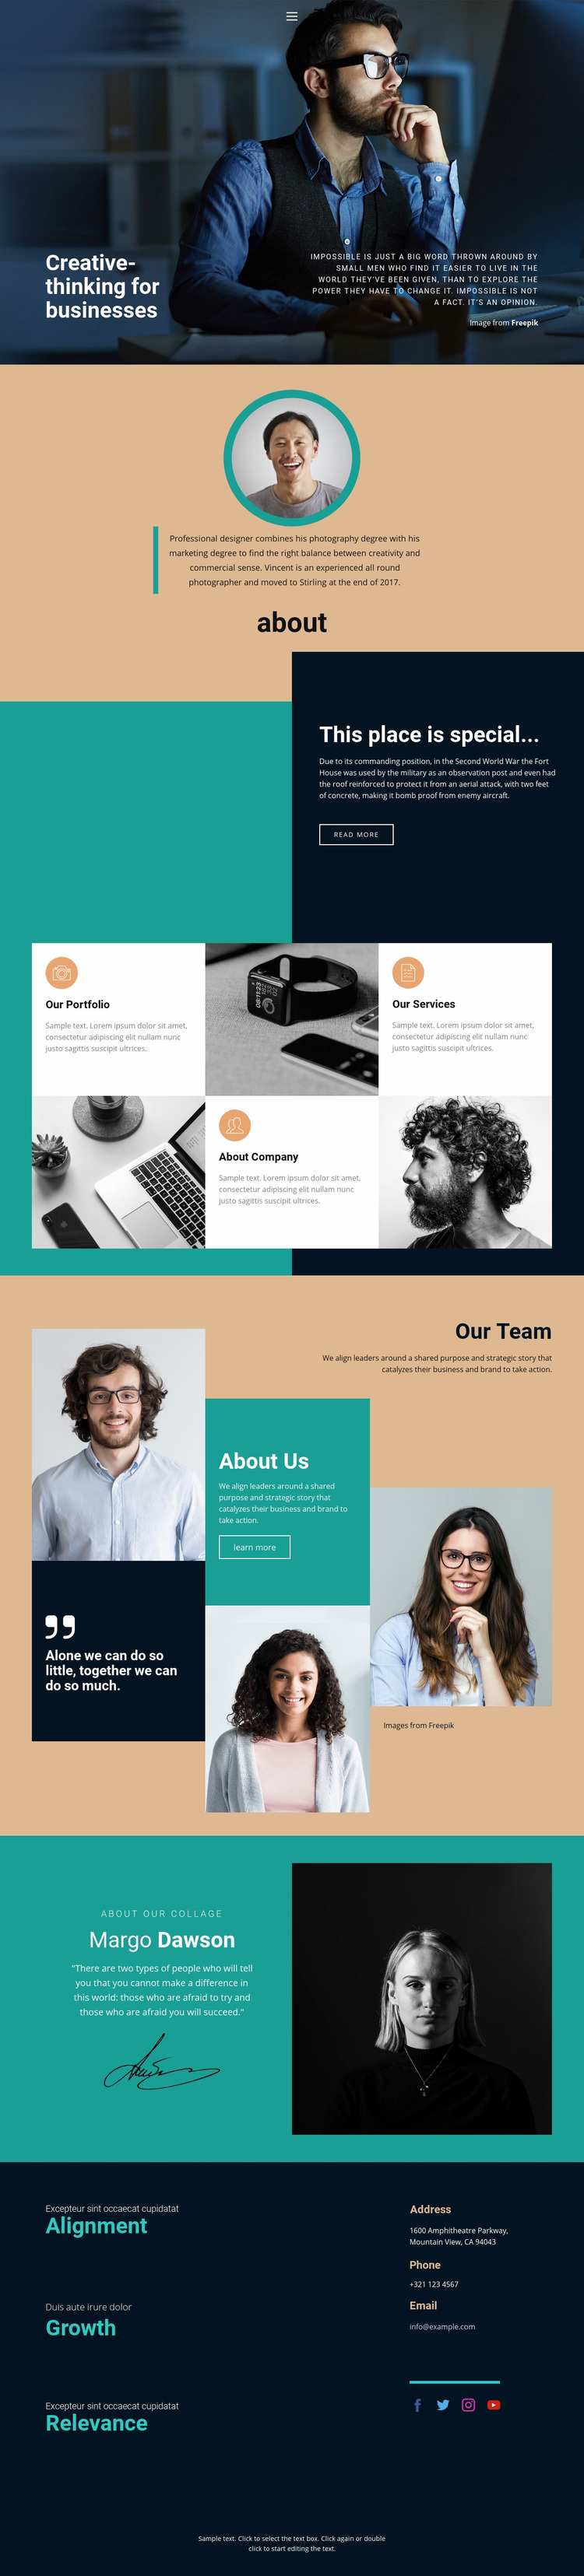 Creative growing business Web Page Designer